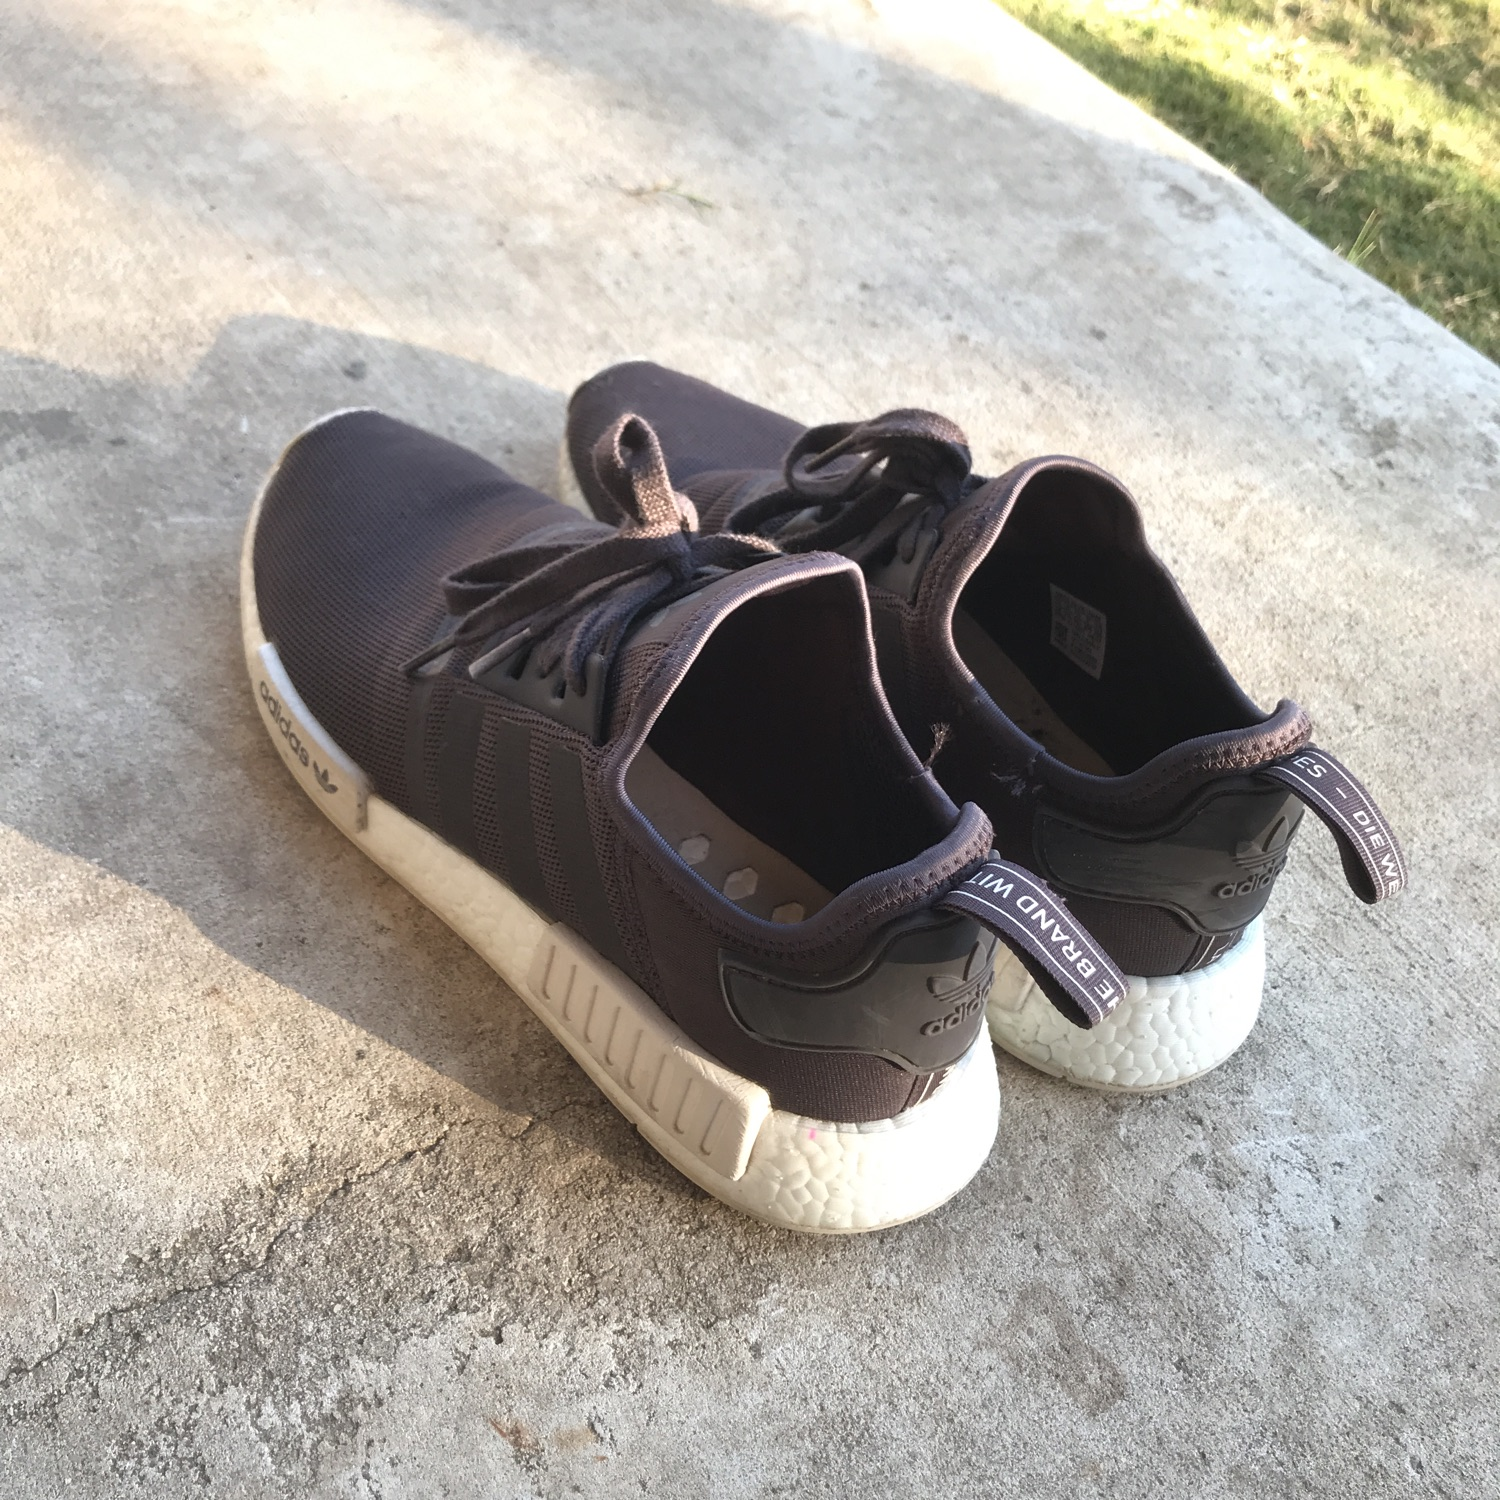 hot sale online 8f3b1 45b8b Men's Adidas Nmd Runner R1 Casual Shoes